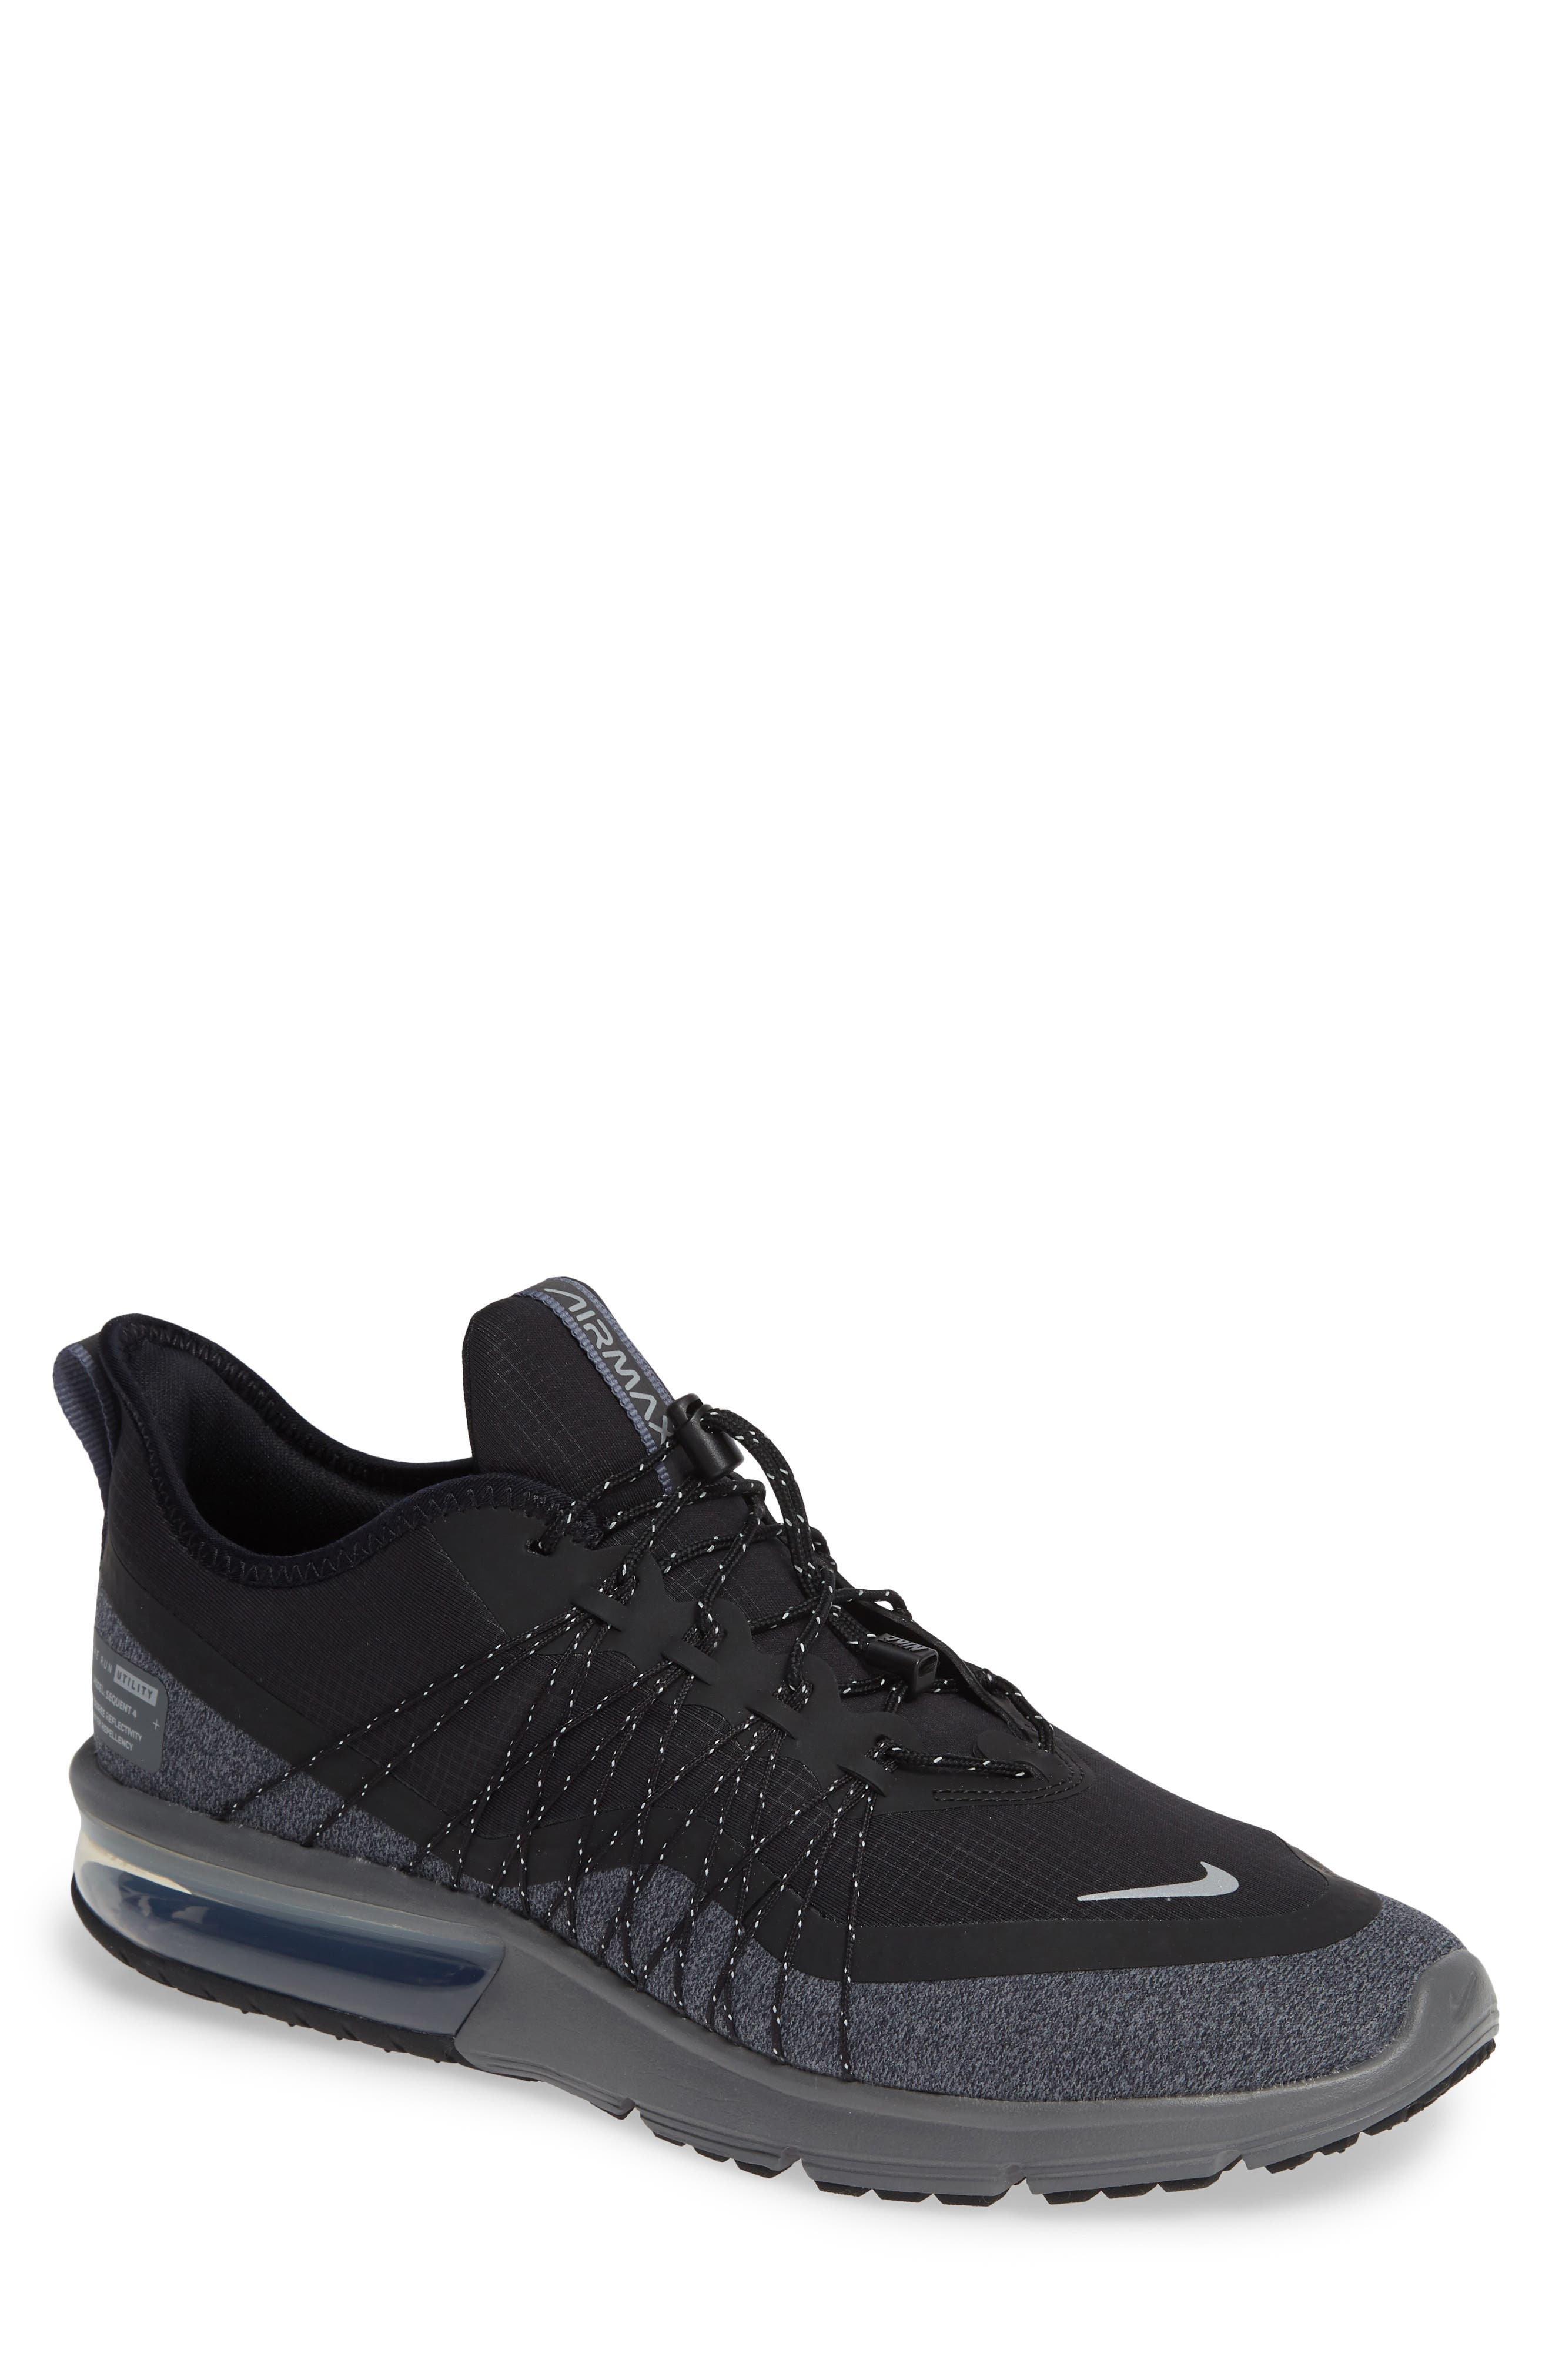 size 40 ba3a0 13dfd nike air max sequent 4 shield Buy and sell Nike KD ...